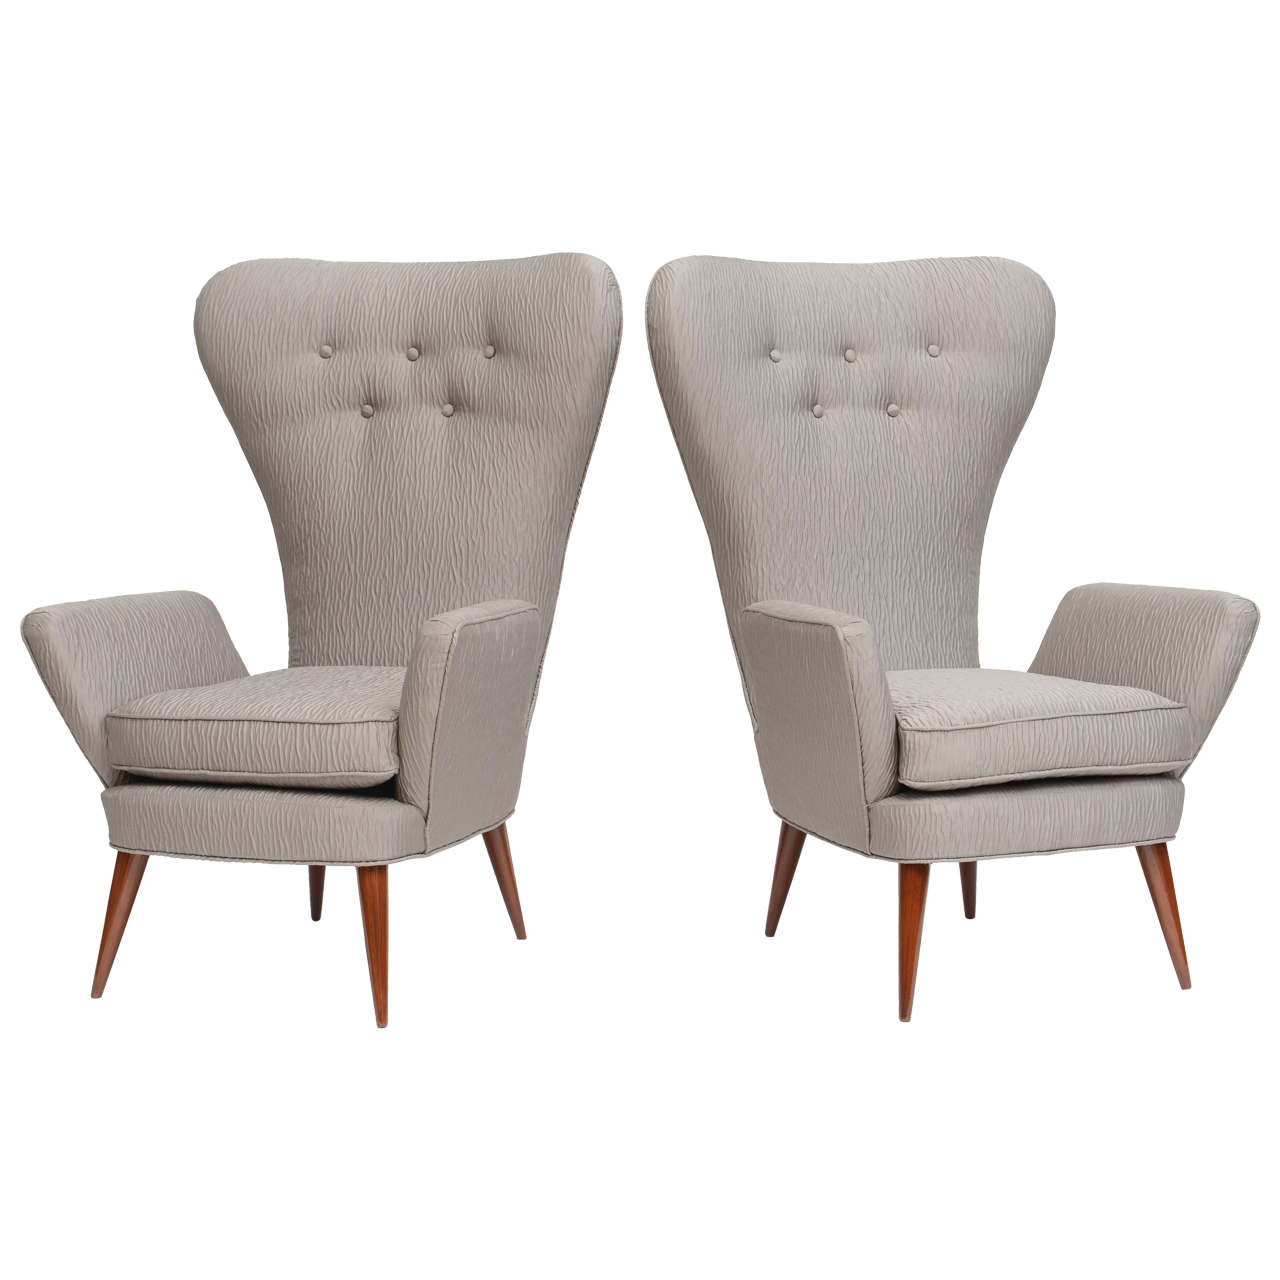 pair of italian modern high back chairs italy for sale at 1stdibs